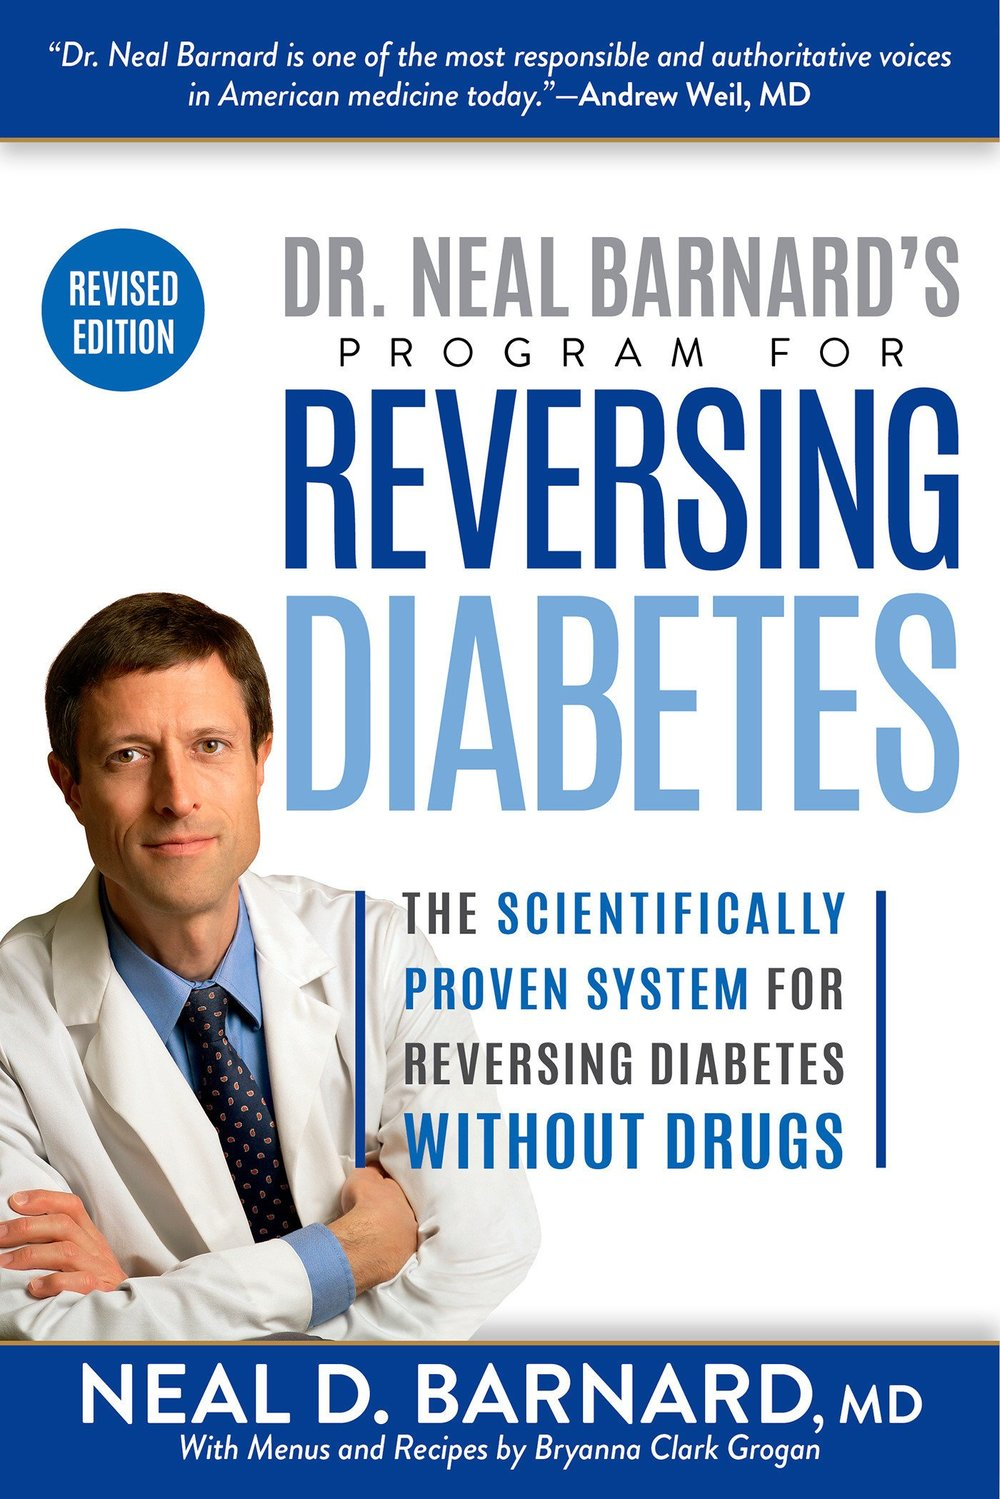 Dr. Neal Barnard's Program for Reversing Diabetes  by Neal Barnard, MD